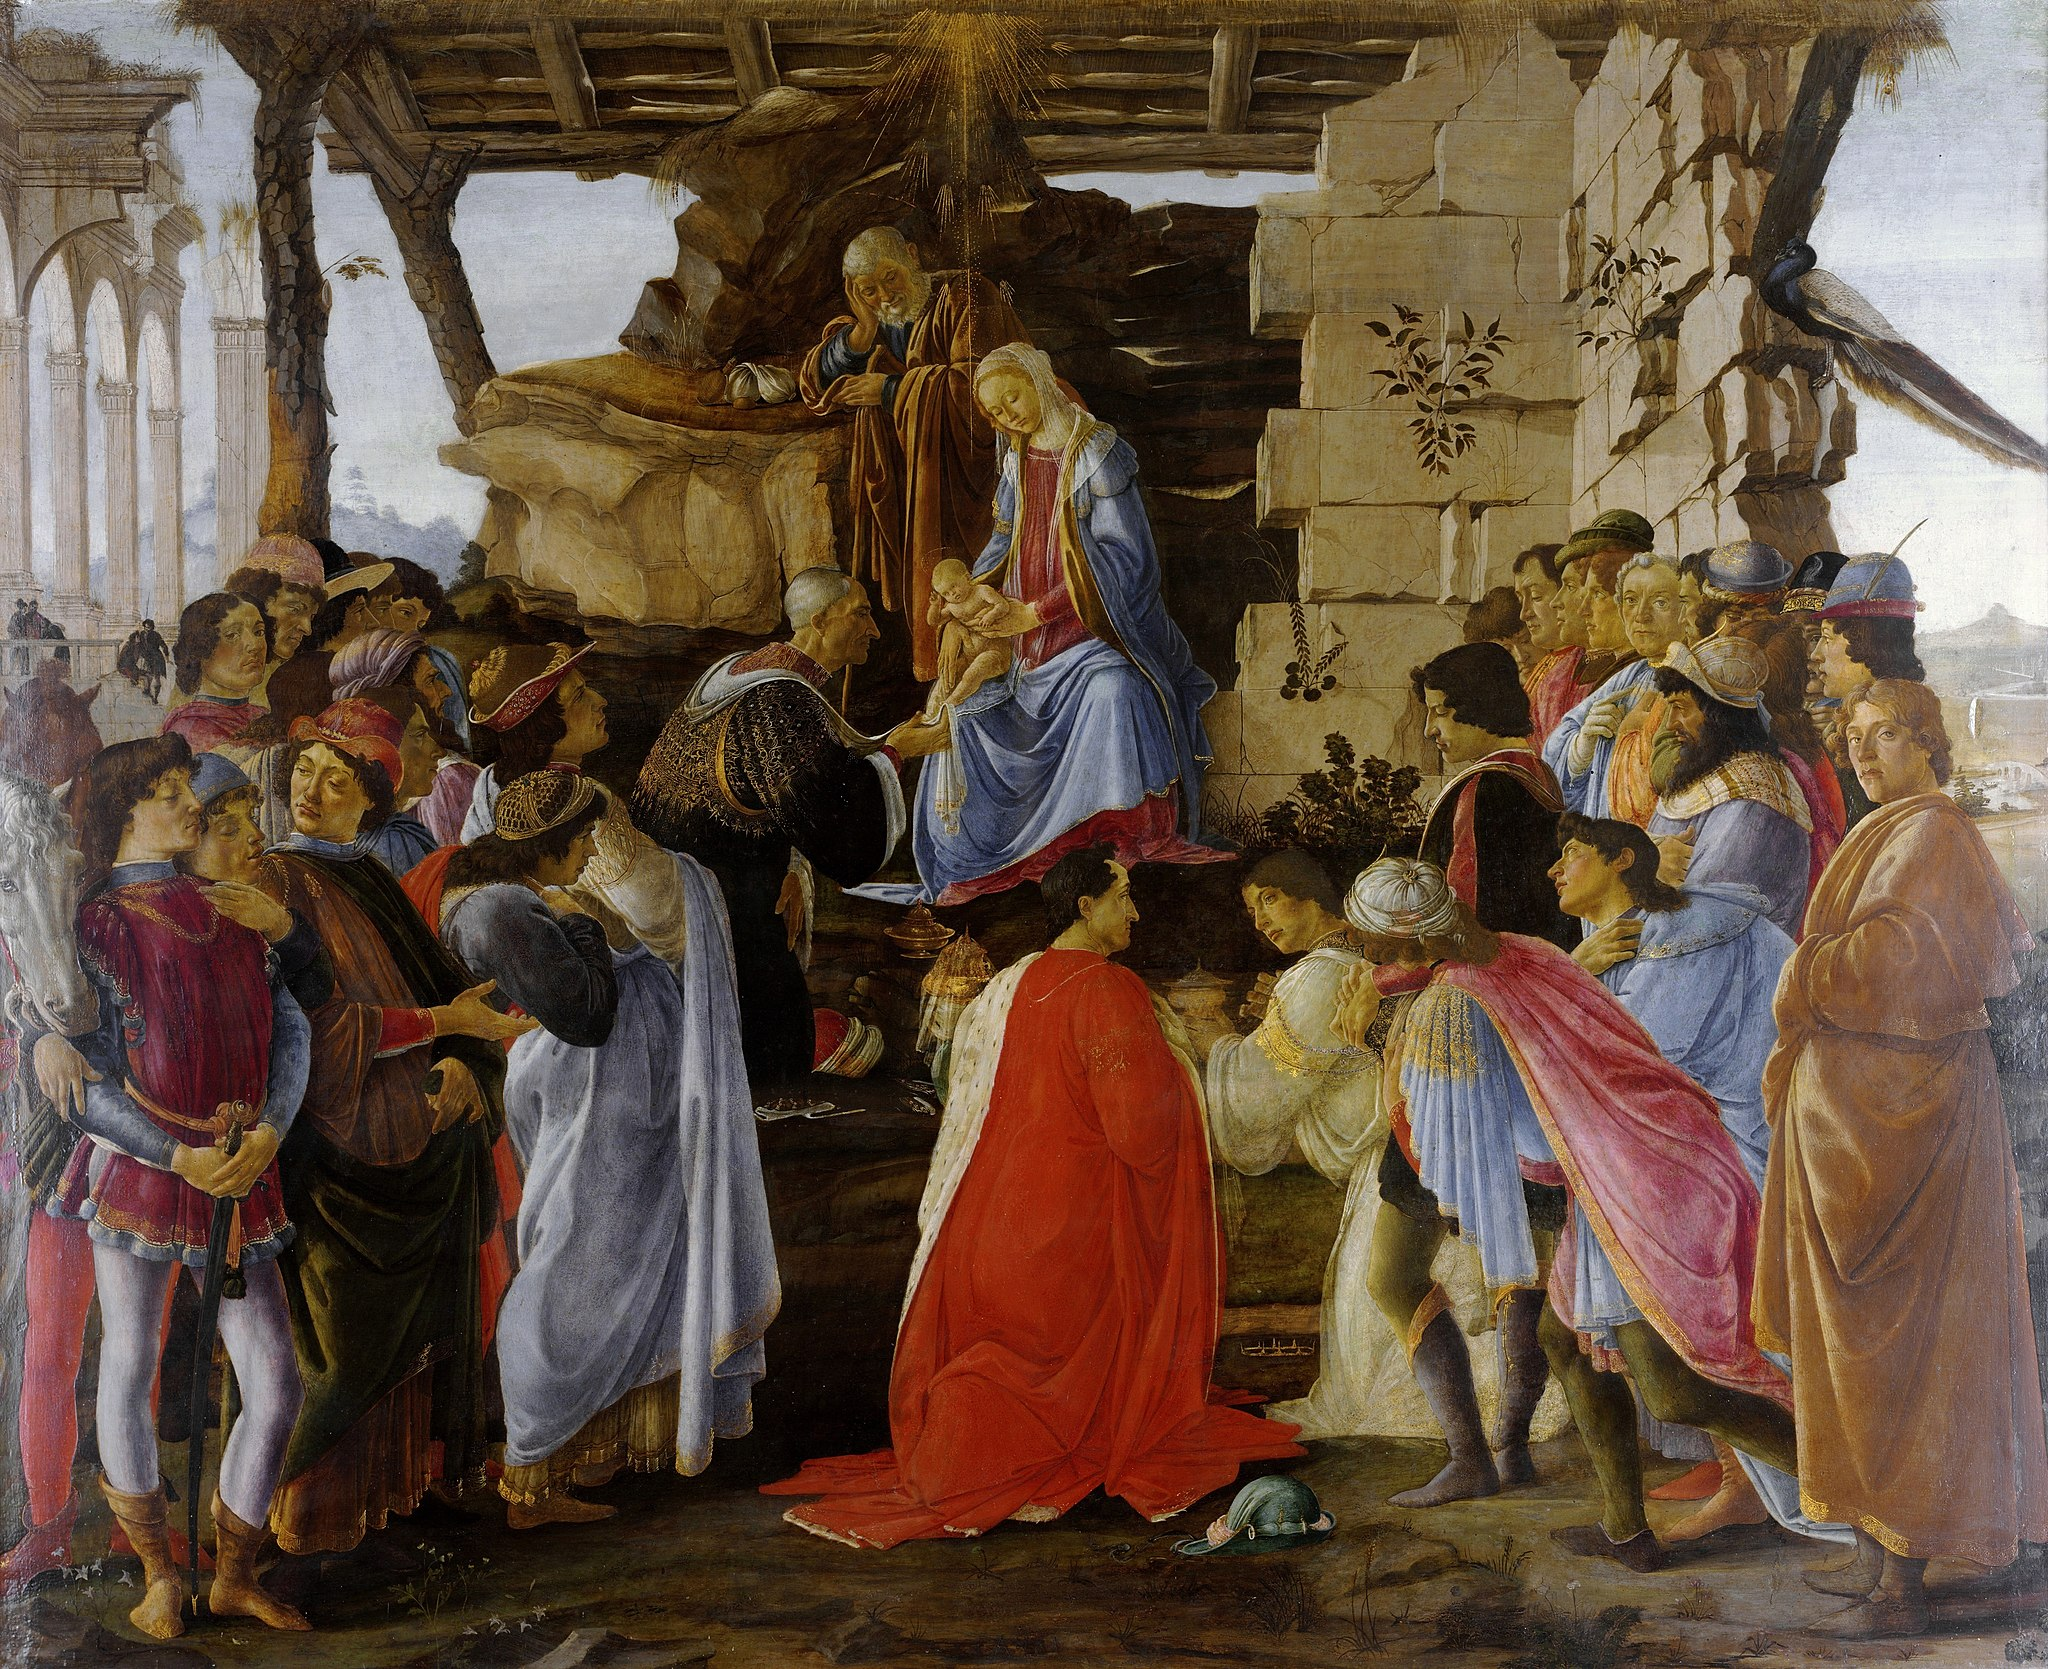 Sandro Botticelli, The Adoration of the Magi, c1476